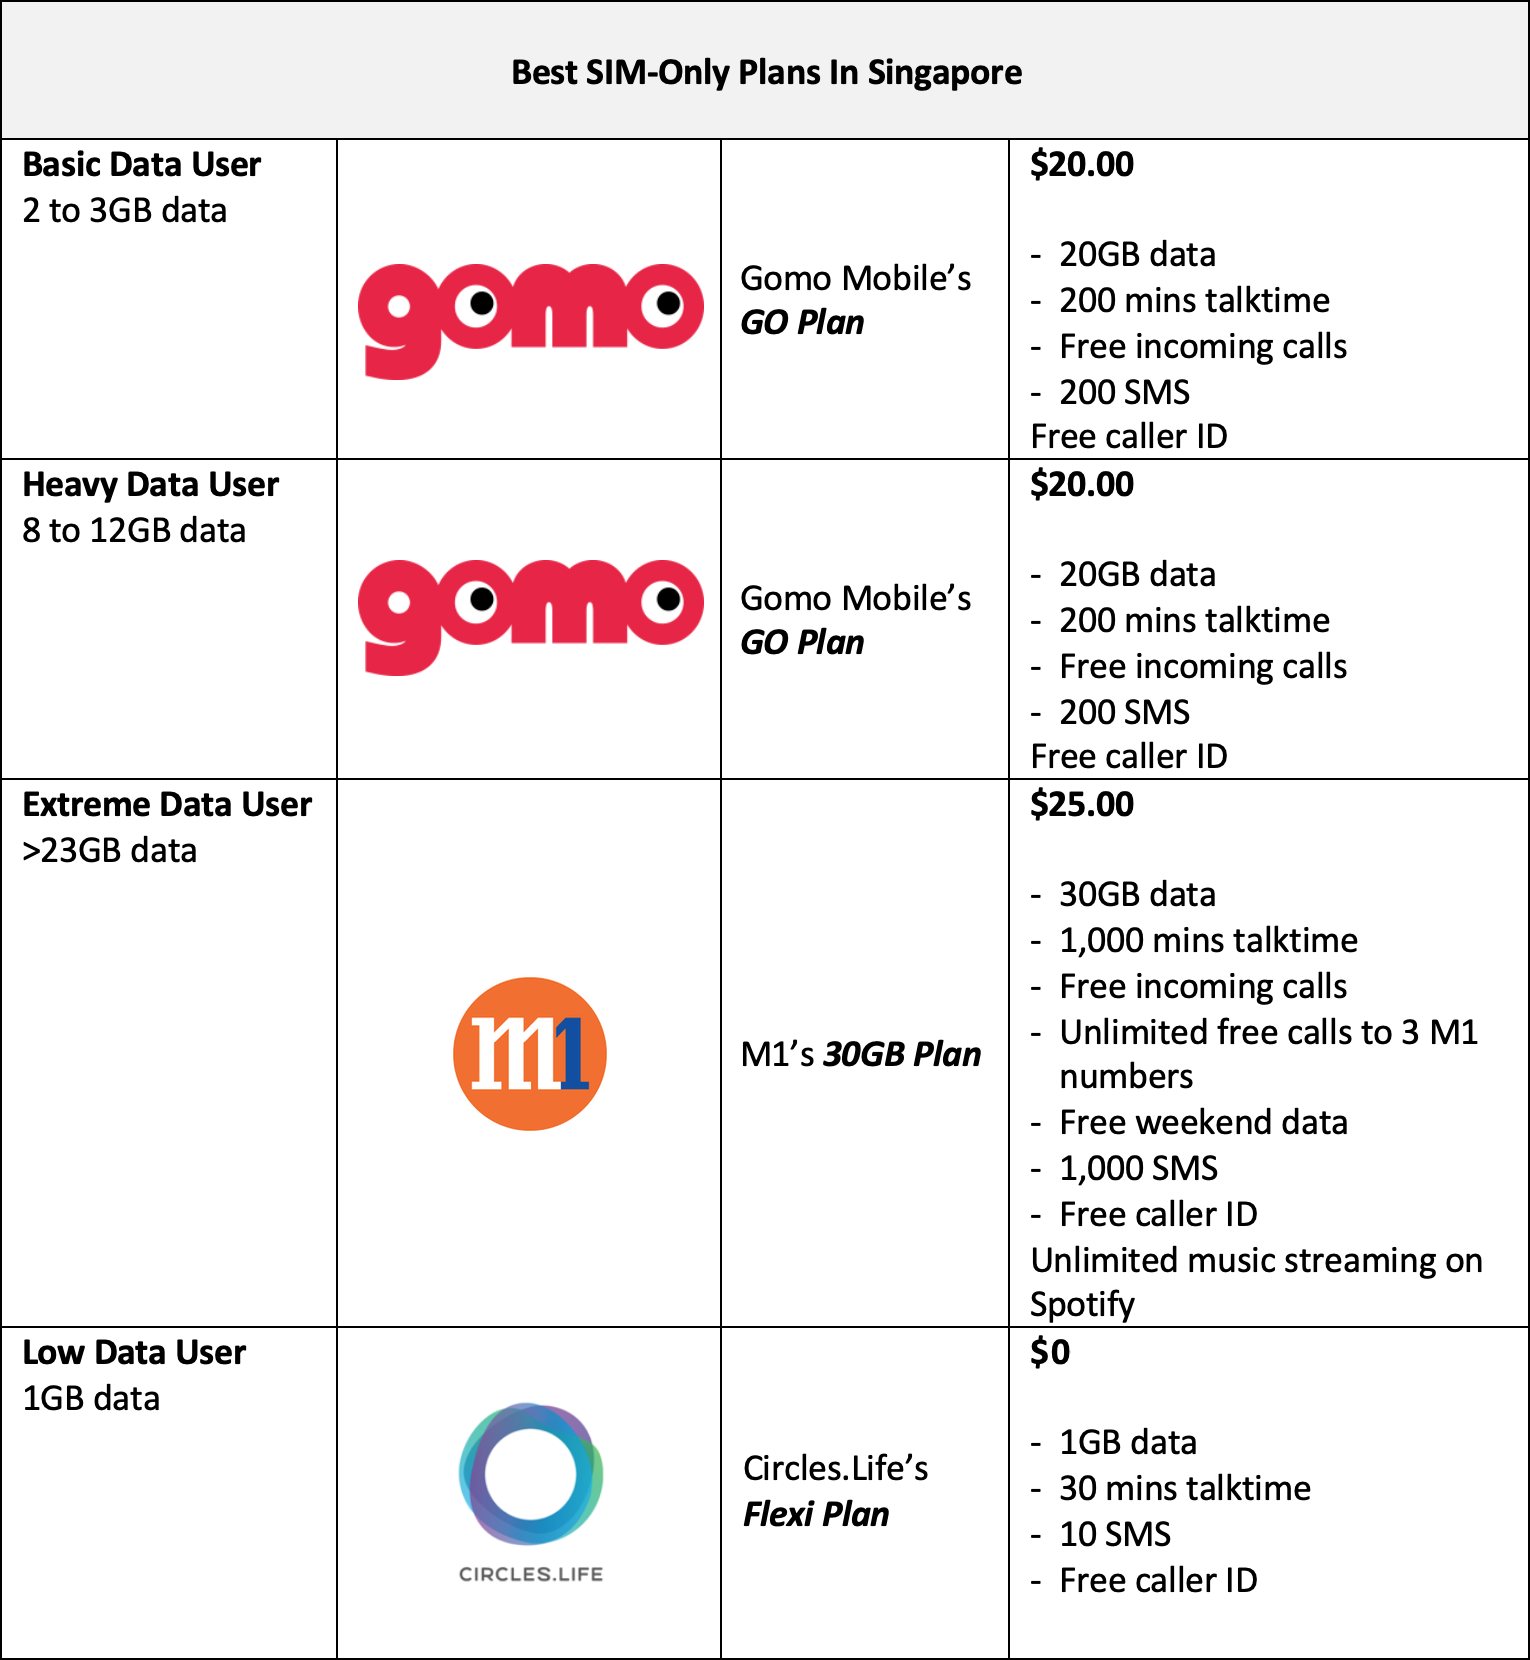 Cheatsheet] What Are The Best SIM-Only Plans In Singapore (2019 Edition)